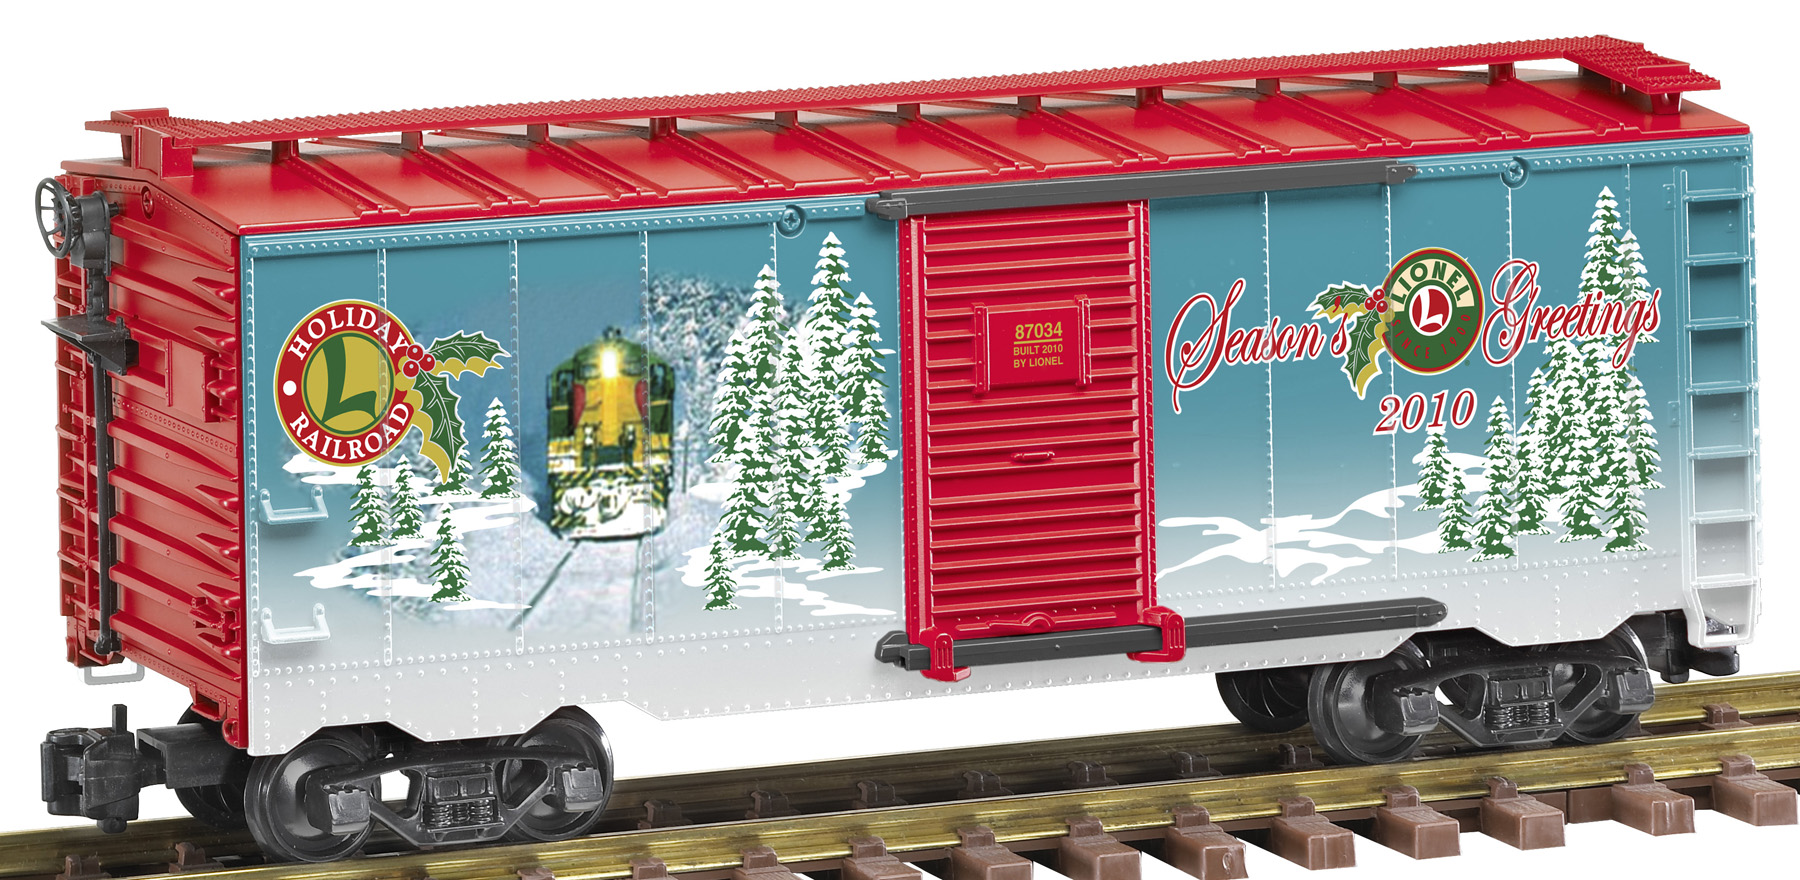 8-87034 2010 Holiday Christmas Boxcar Lionel Large Scale